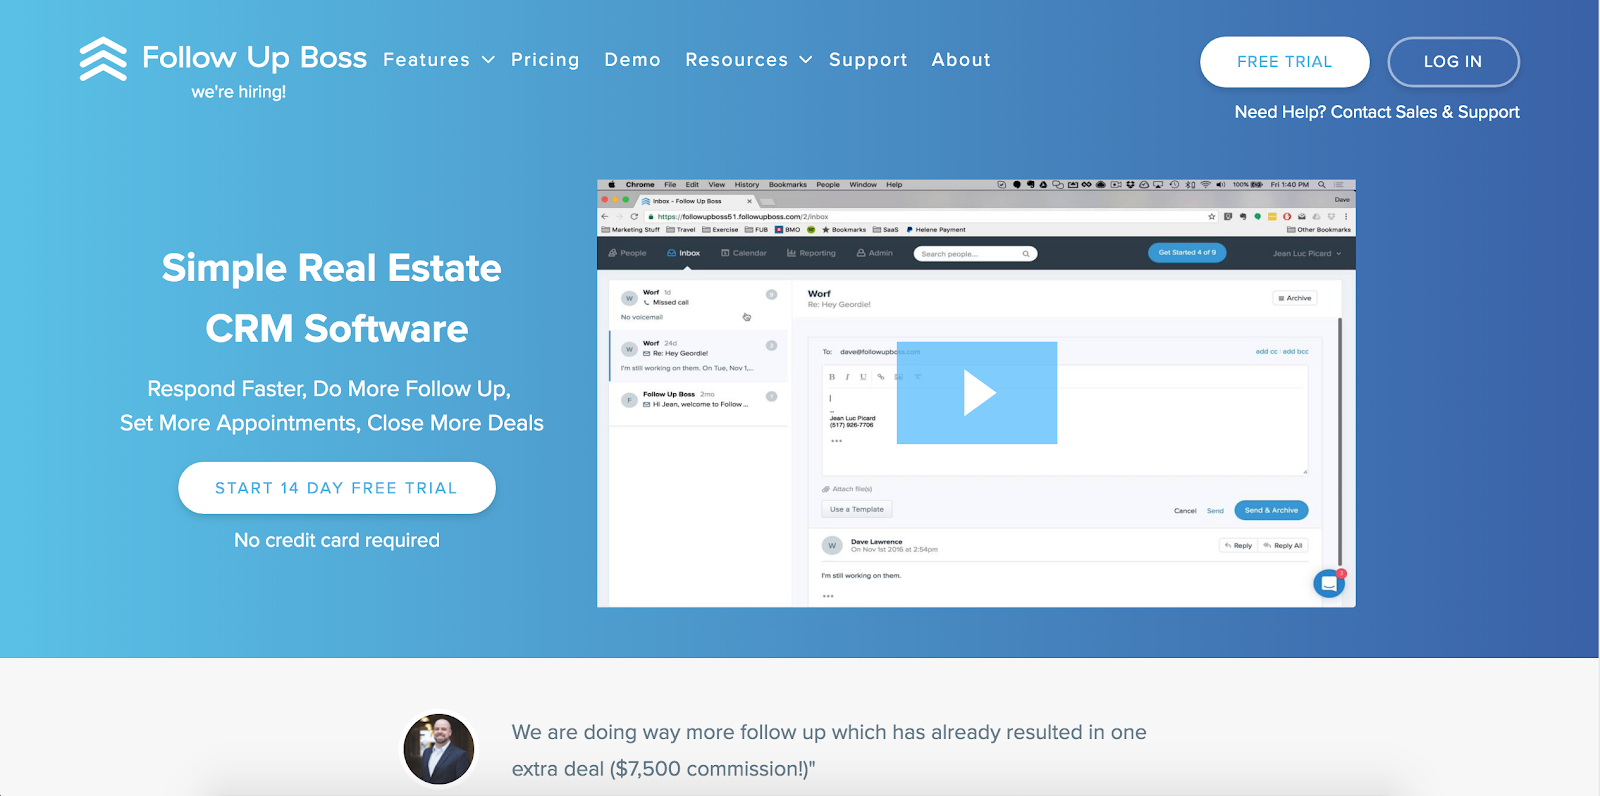 Follow Up Boss CRM | Real Estate Marketing Tools